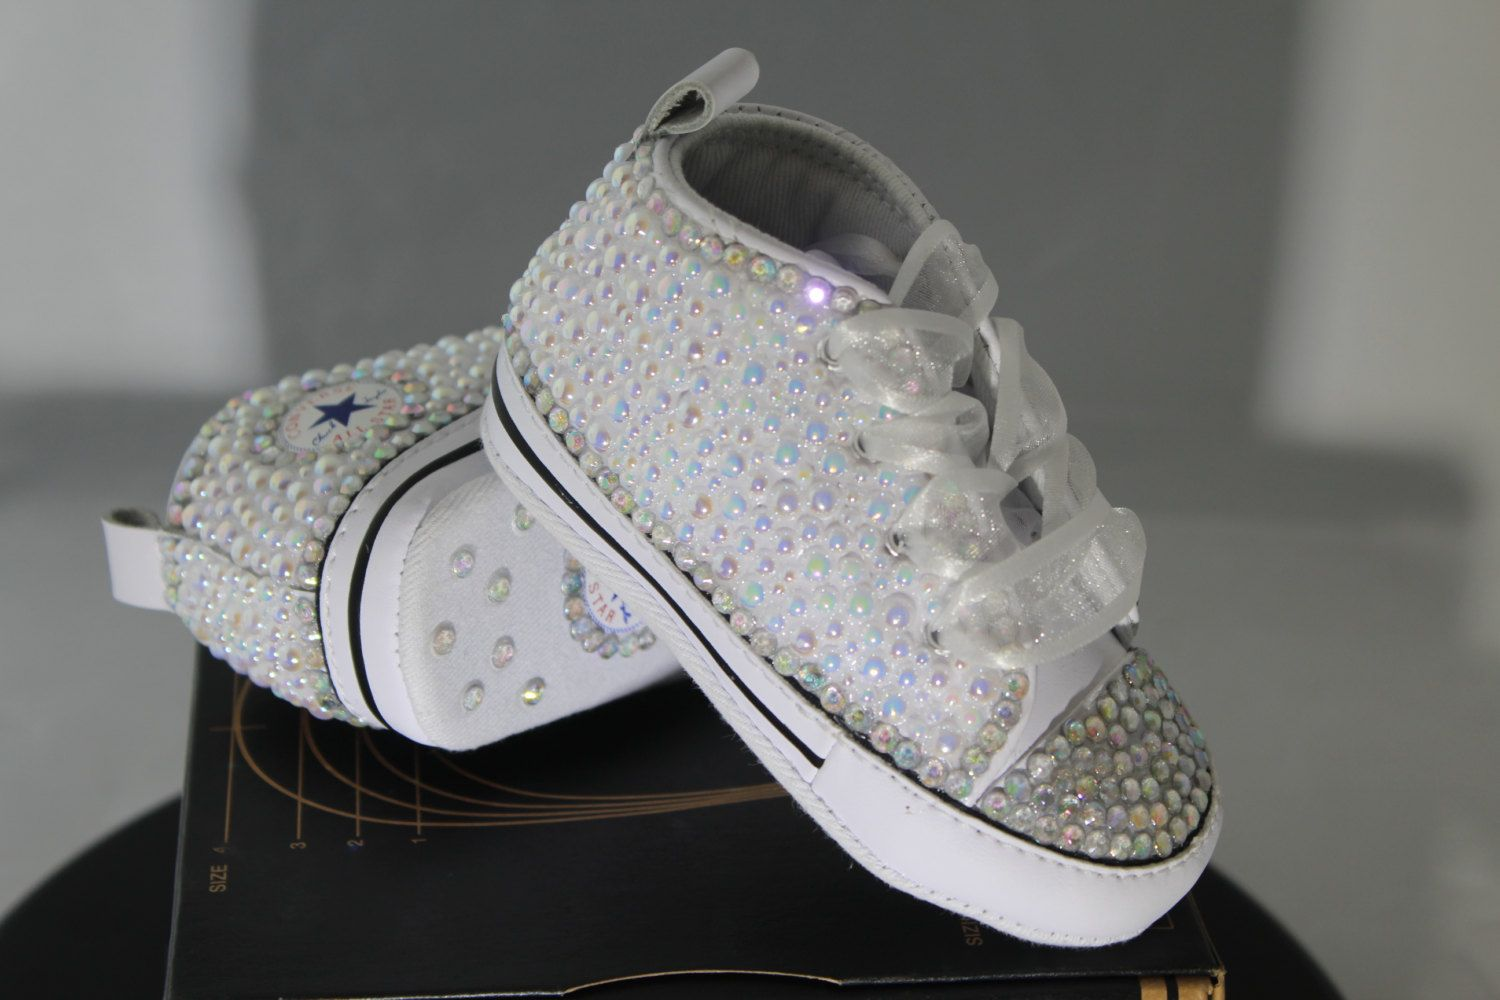 Baby- Infant- Baptism- Christening- Custom Converse- Crystal  Pearl Studded  Shoes- Baby Shower Gift Set- Baby Boys- Baby Girls- Size NB   Up by ... e72b56cd7f